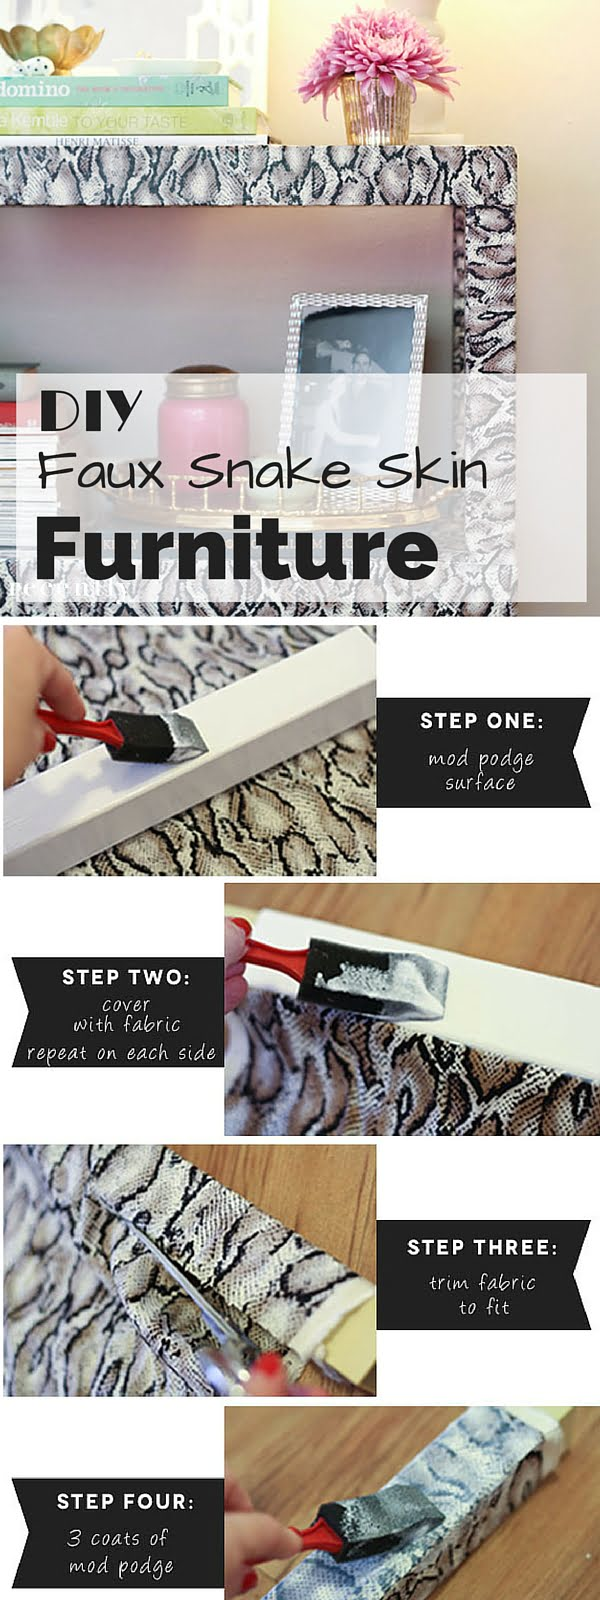 Check out the tutorial: #DIY Faux Snake Skin Furniture #crafts #homedecor